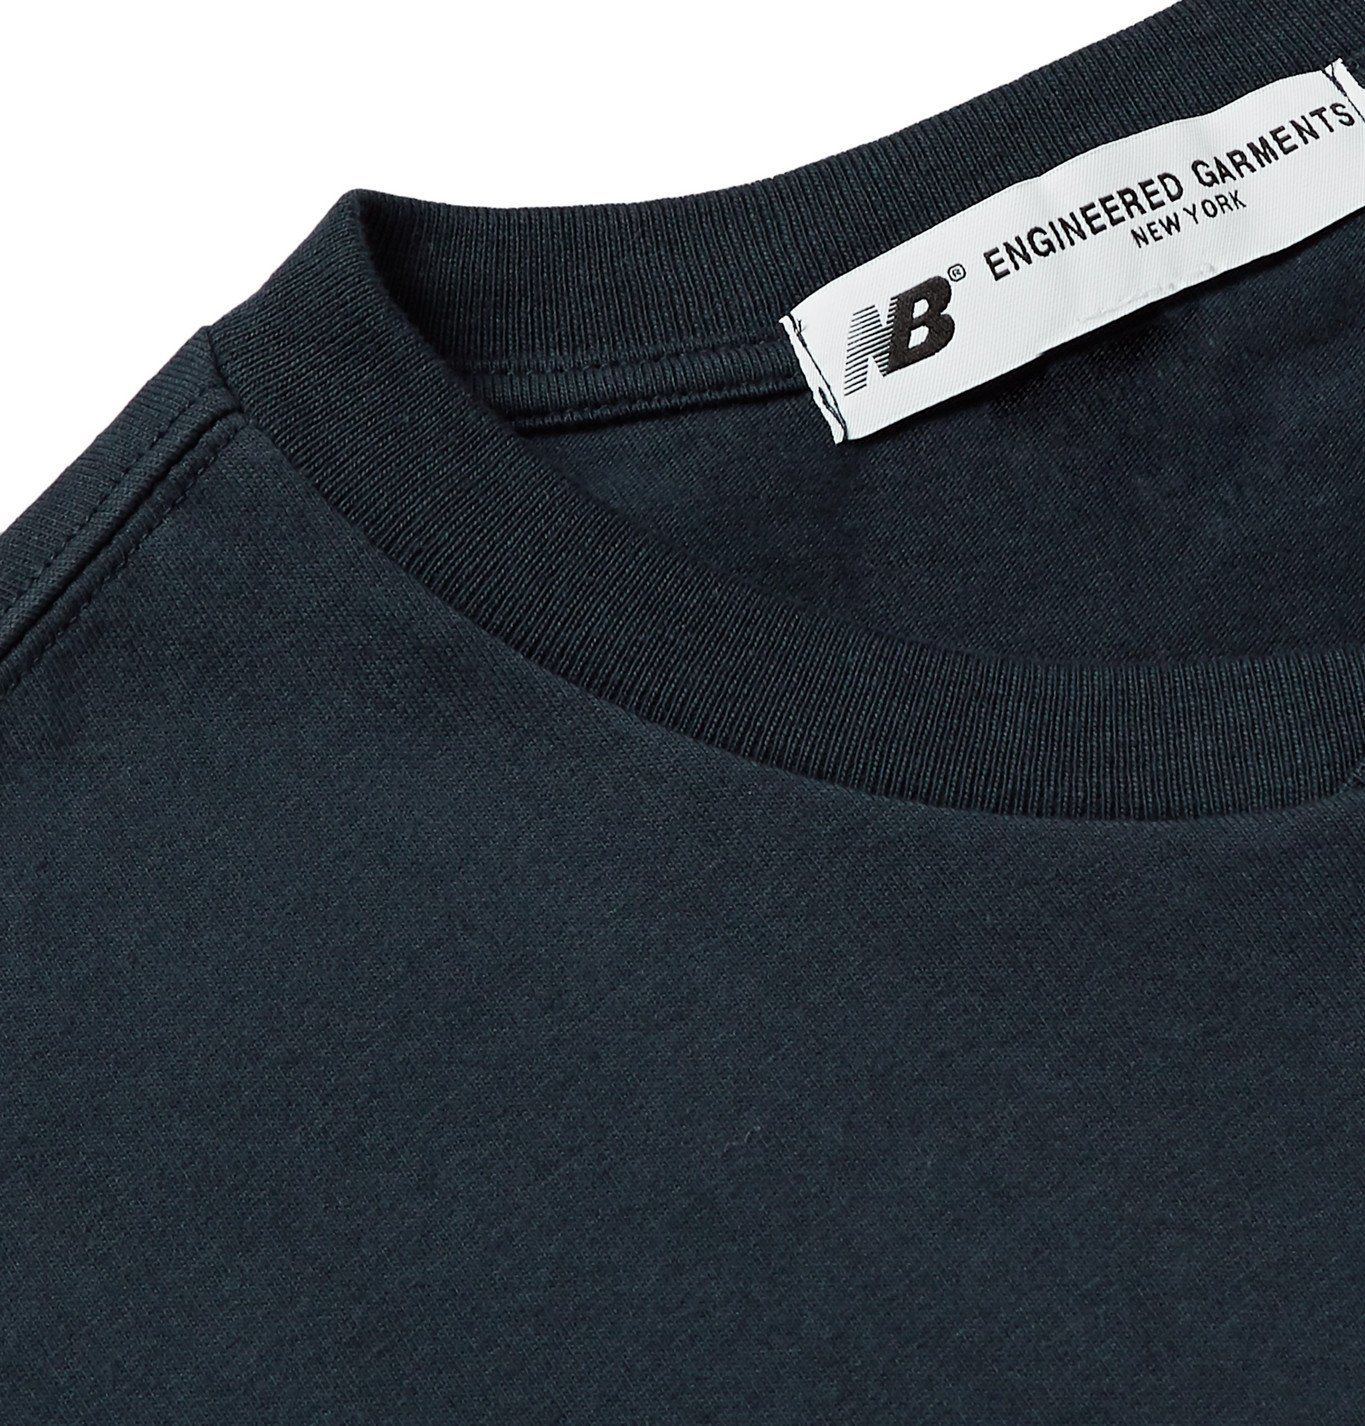 New Balance - Engineered Garments Logo-Print Mélange Cotton-Jersey T-Shirt - Blue